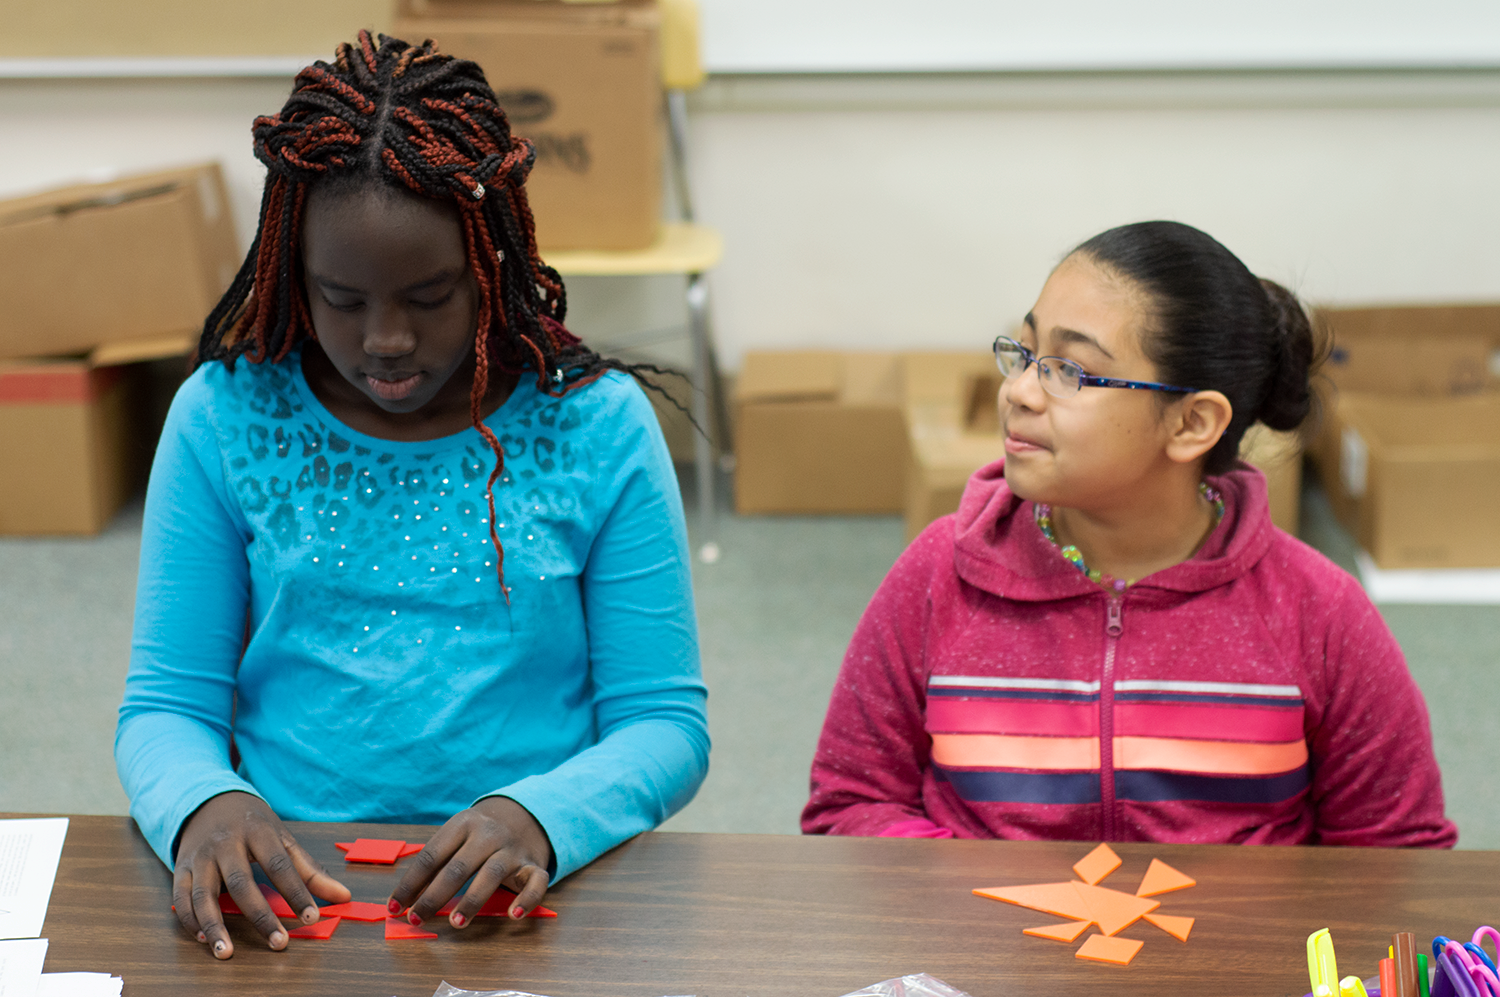 Minnesota's Austin Public Schools reaches out to parents and guardians to encourage them to have their children tested for gifted and talented programs.